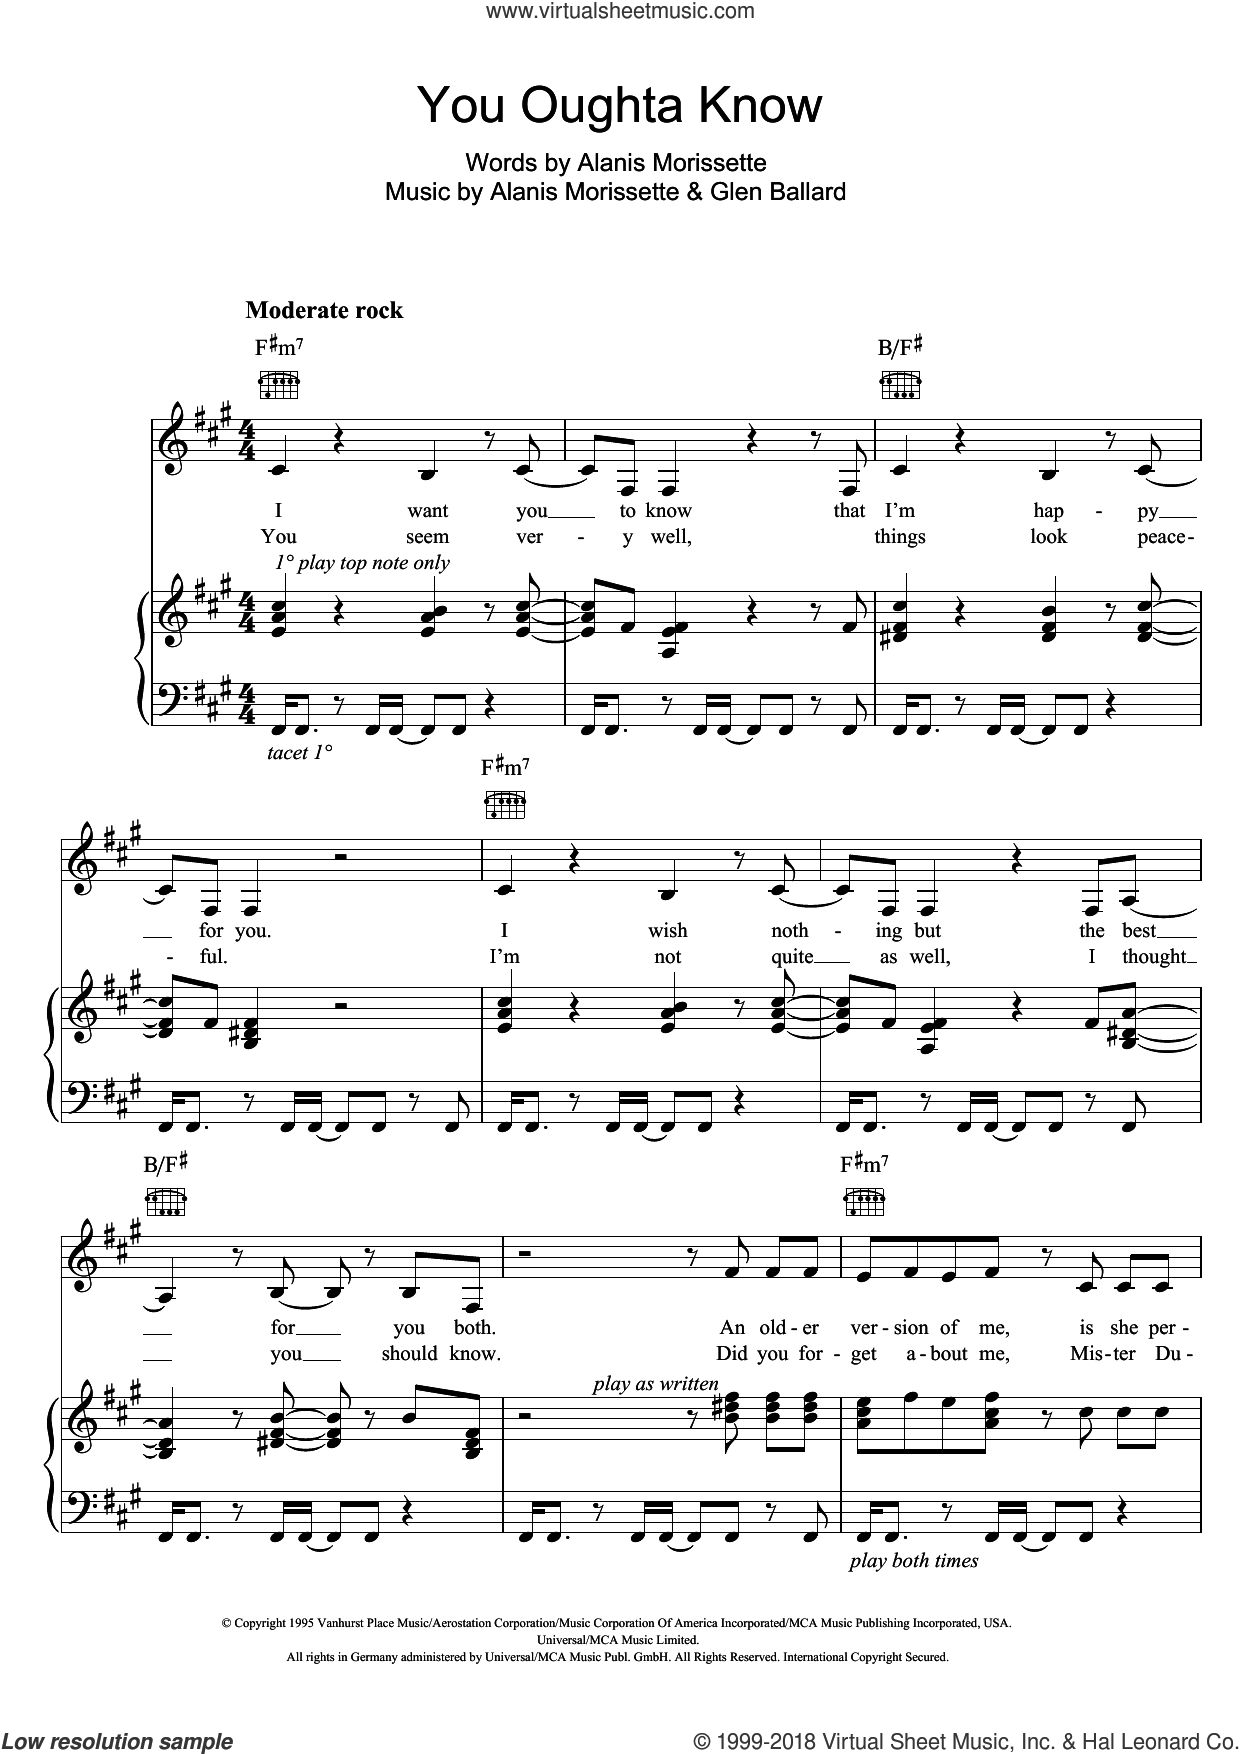 You Oughta Know sheet music for voice, piano or guitar by Alanis Morrisette, Alanis Morissette and Glen Ballard, intermediate skill level